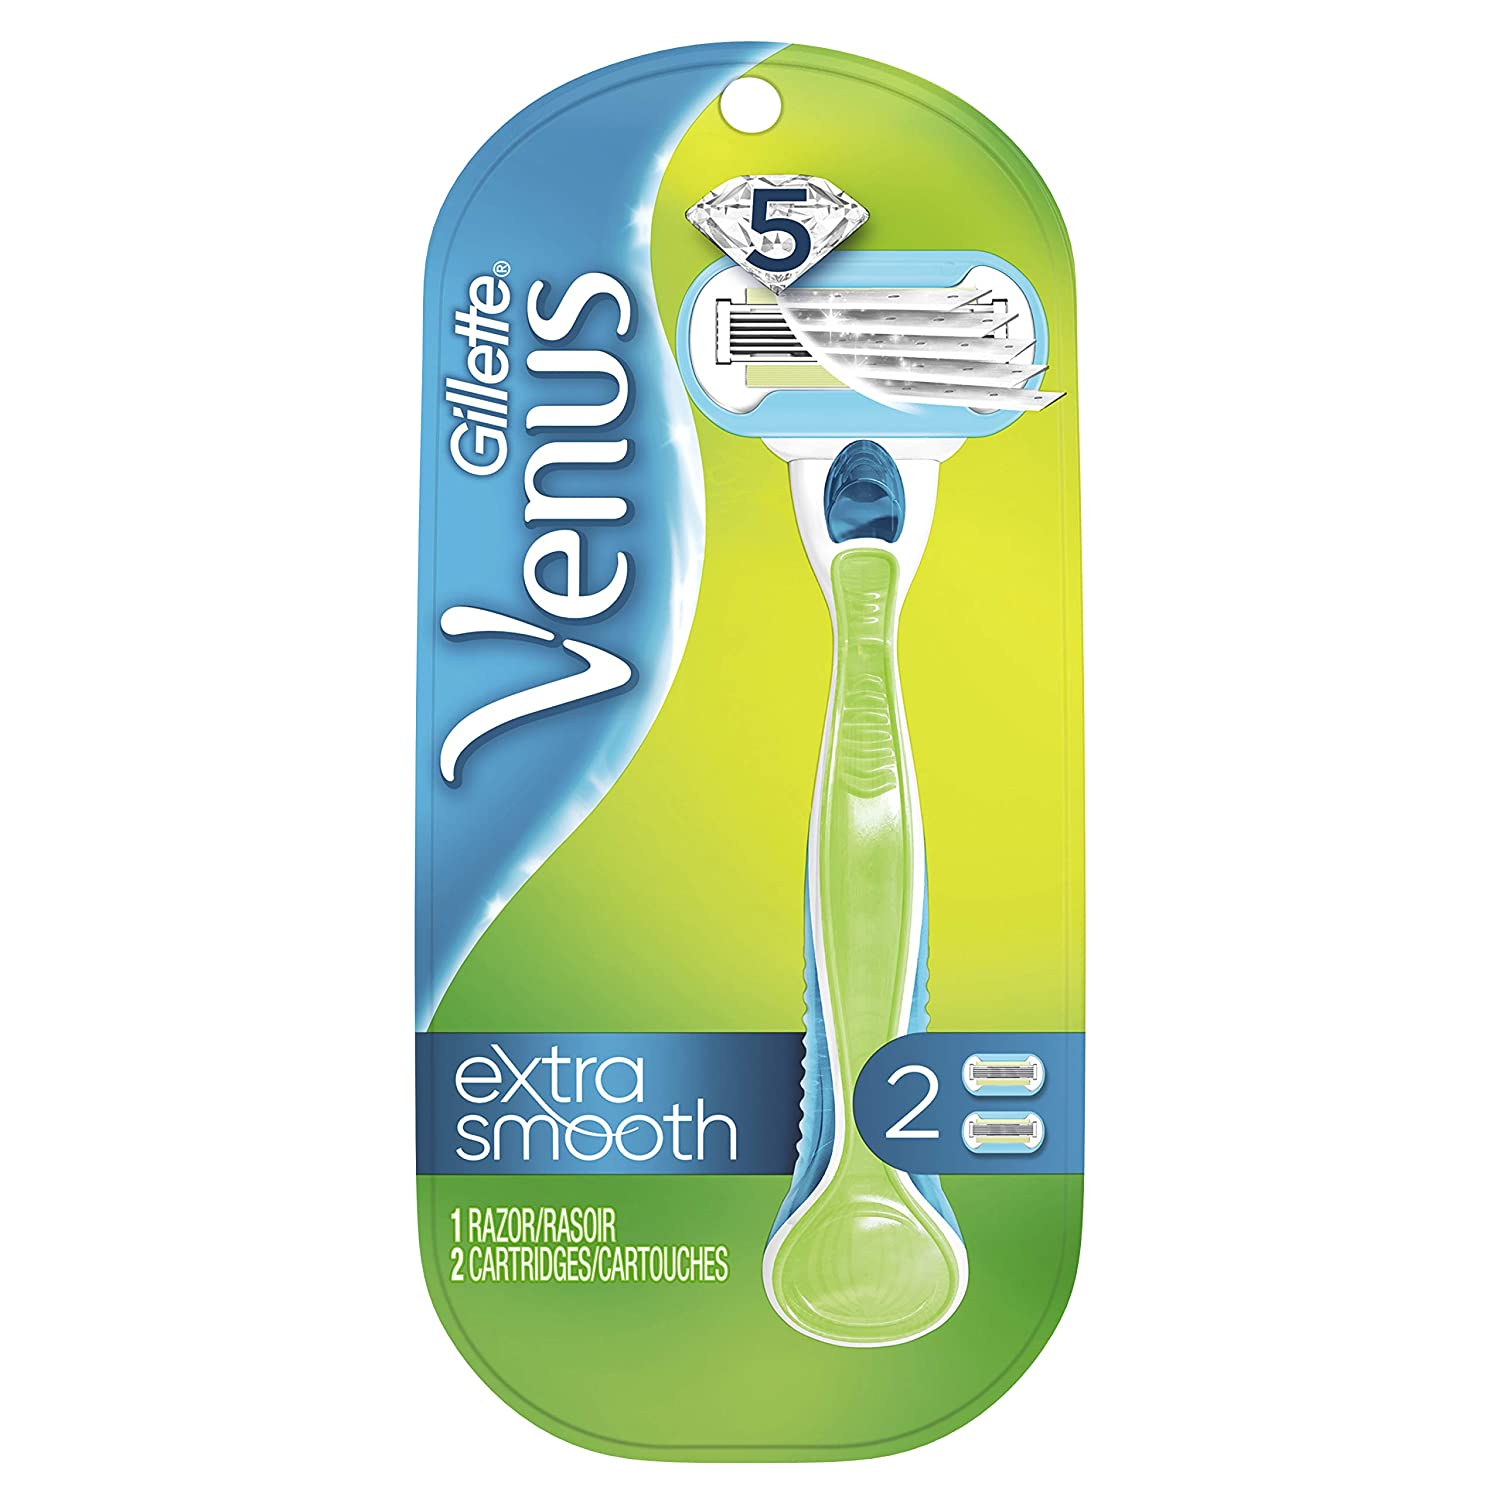 Gillette Venus Extra Smooth Green Women's Razor- 1 Handle + 2 Refills (Packaging May Vary)